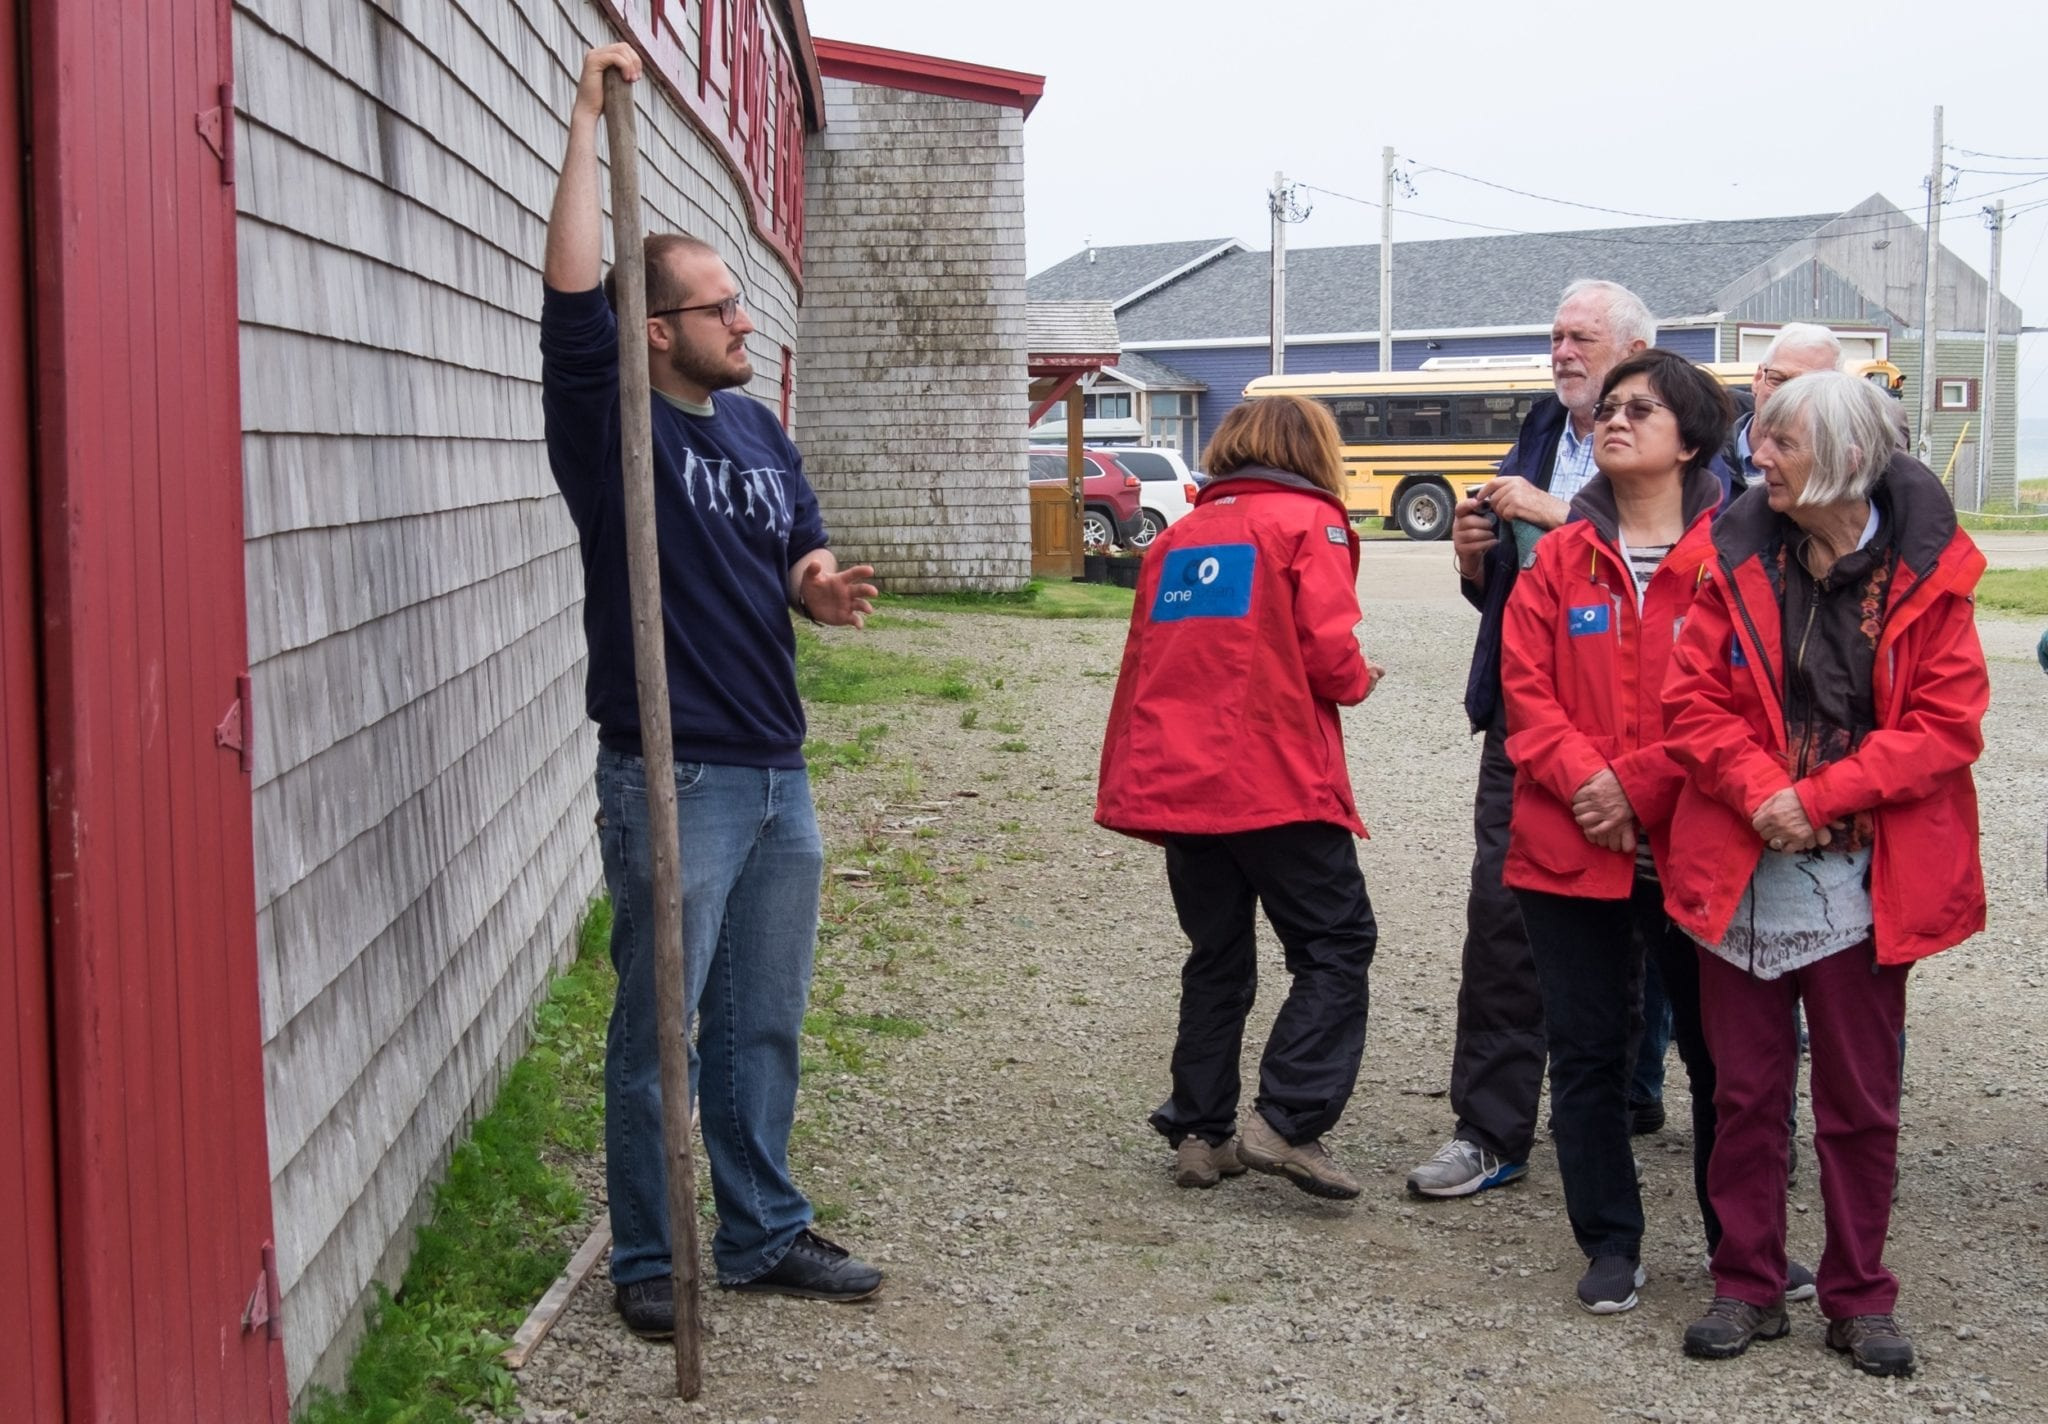 The smokehouse owner stands in front of the smokehouse holding a stick taller than him. Several older people wearing bright red OneOcean jackets listen to him talk.